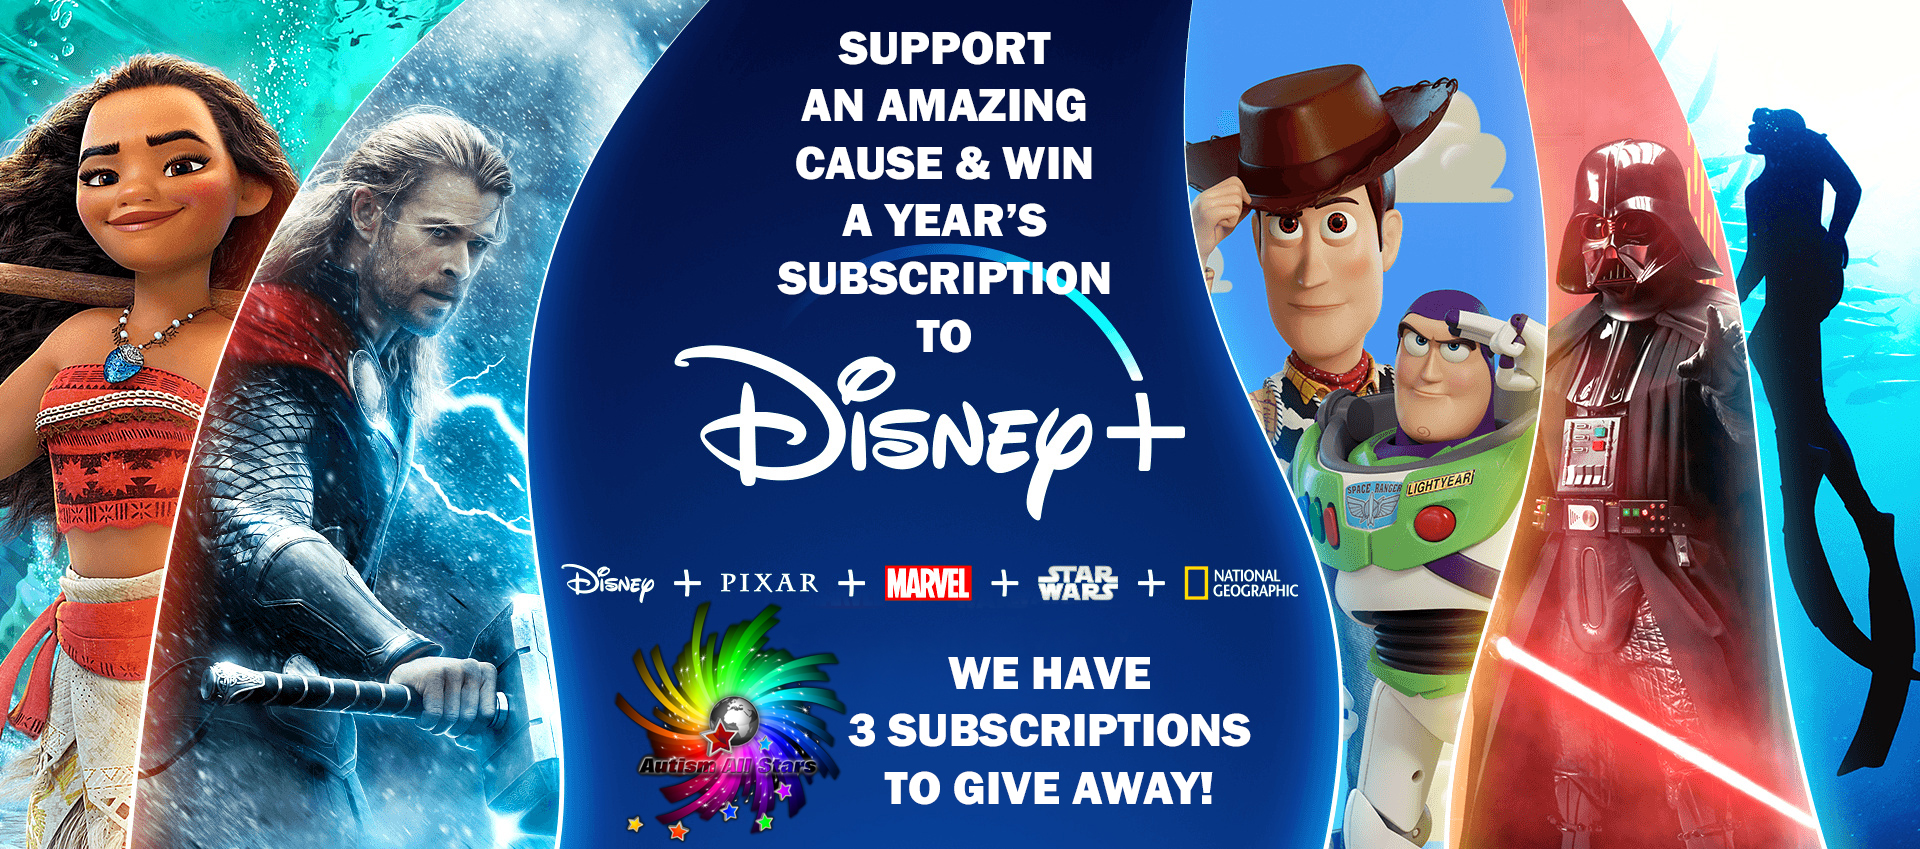 Aspergers, autism, Autism All Stars, autism awareness, charity, diversity, Surrey, Sussex, south east, UK, England, Disney Plus, raffle, Disney+, fundraising